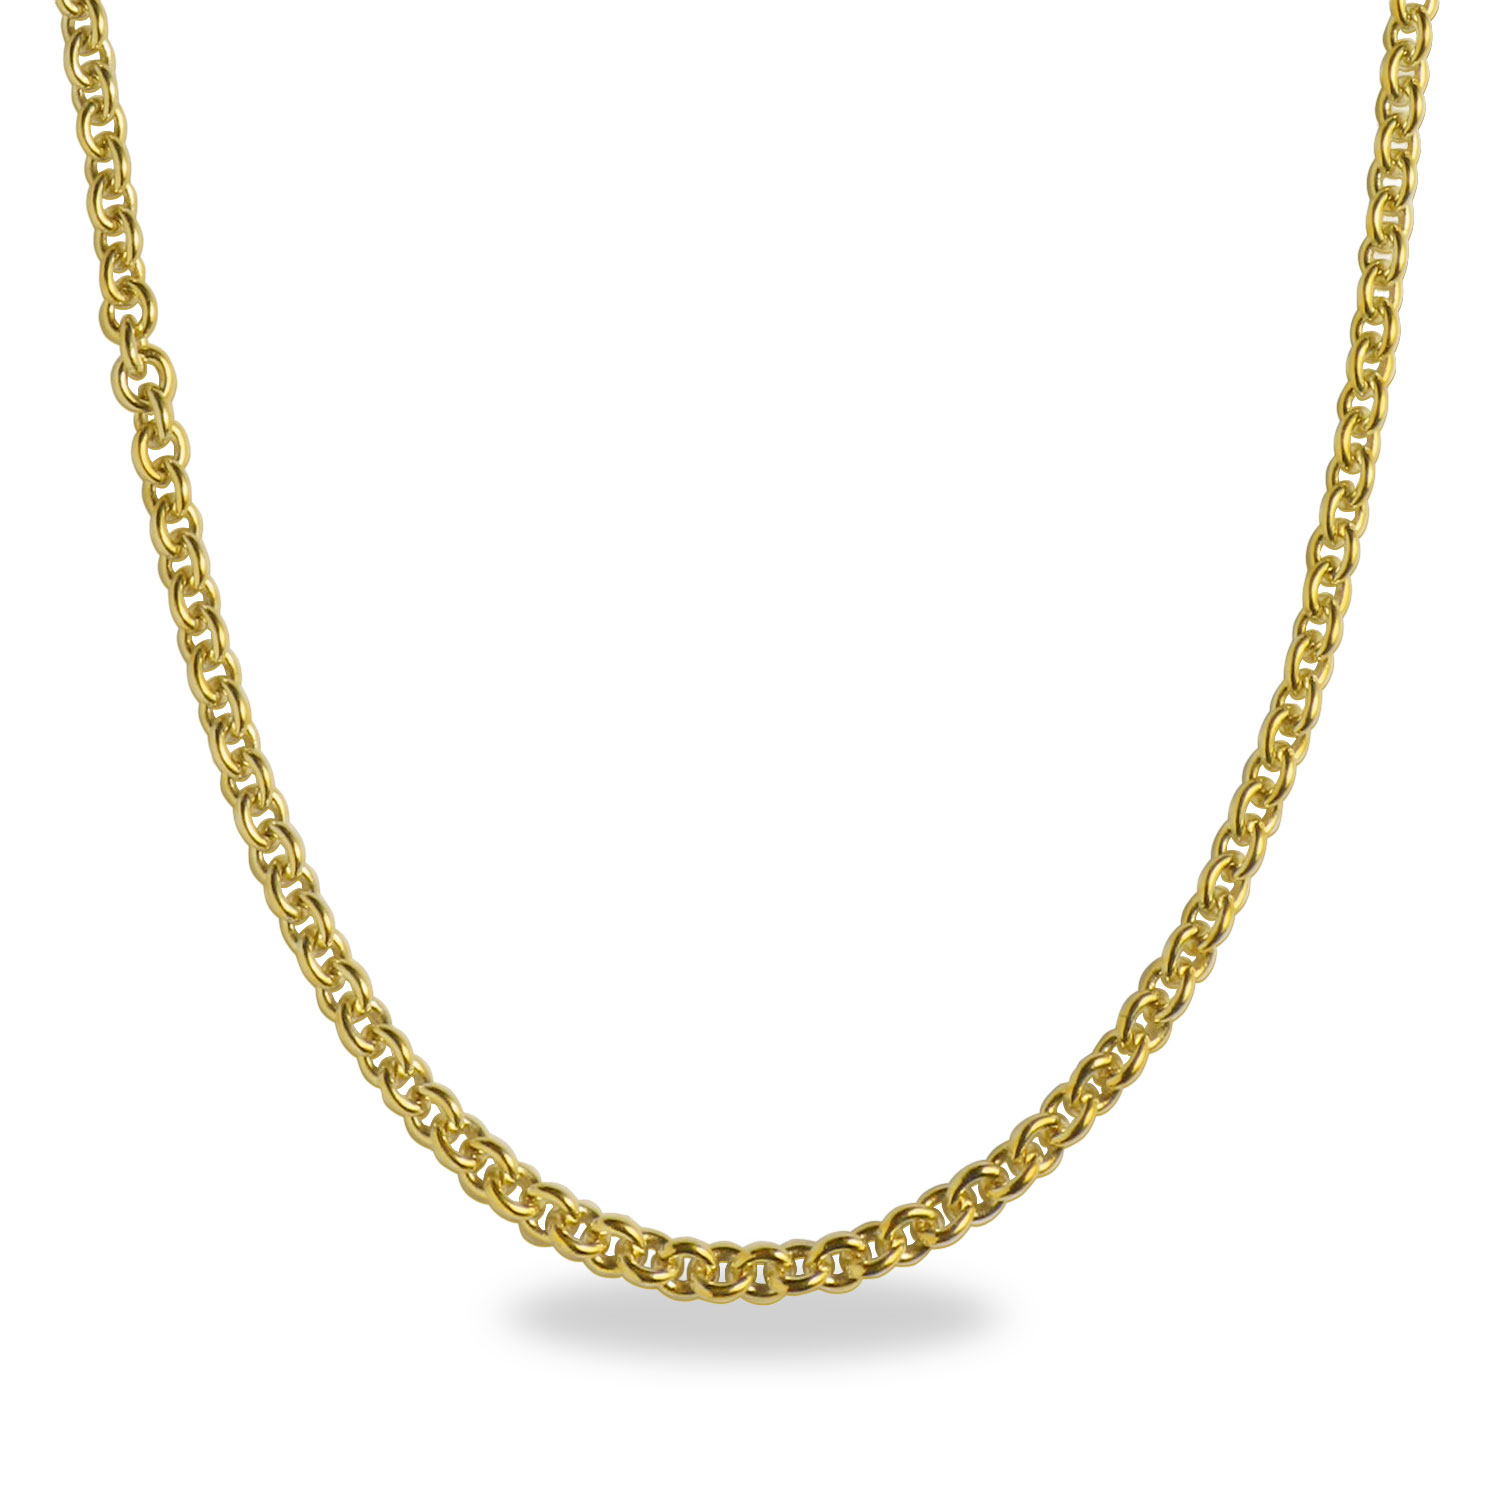 Cable 14k Gold Necklace - 18 in.